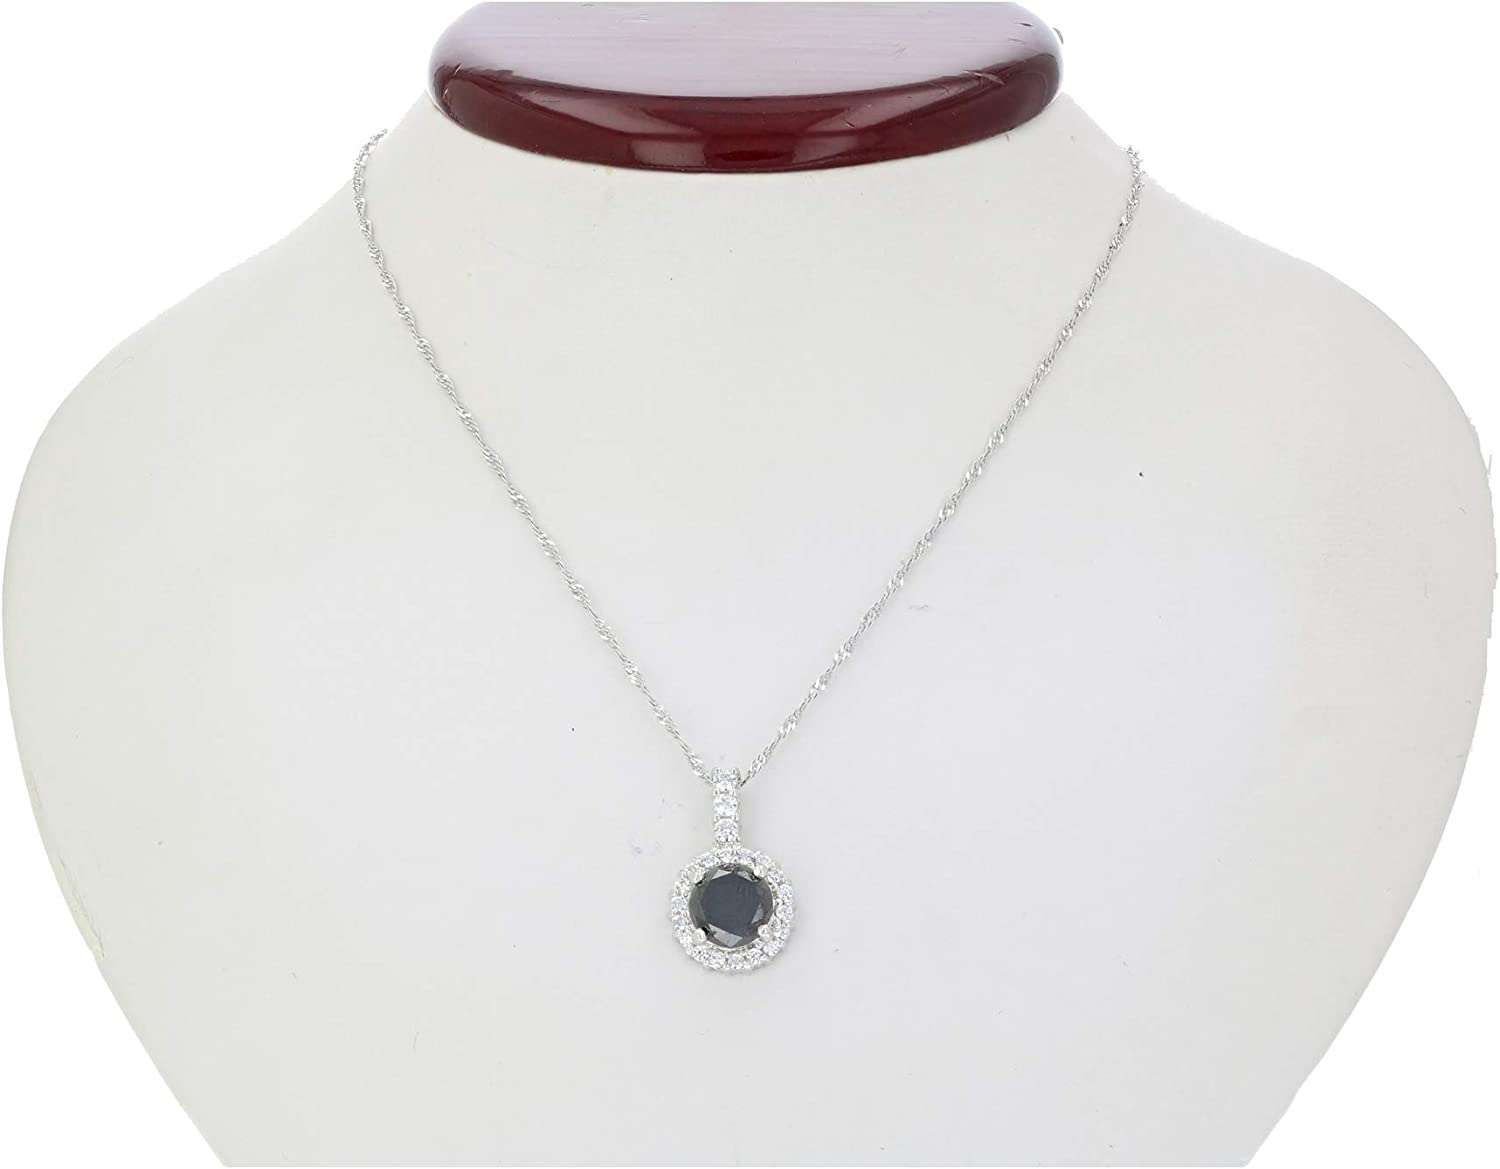 Gift For Her Black Diamond NecklacePendant 1.50 Carat Necklaces for Women with Black Diamond In Sterling Silver Pendantnecklace